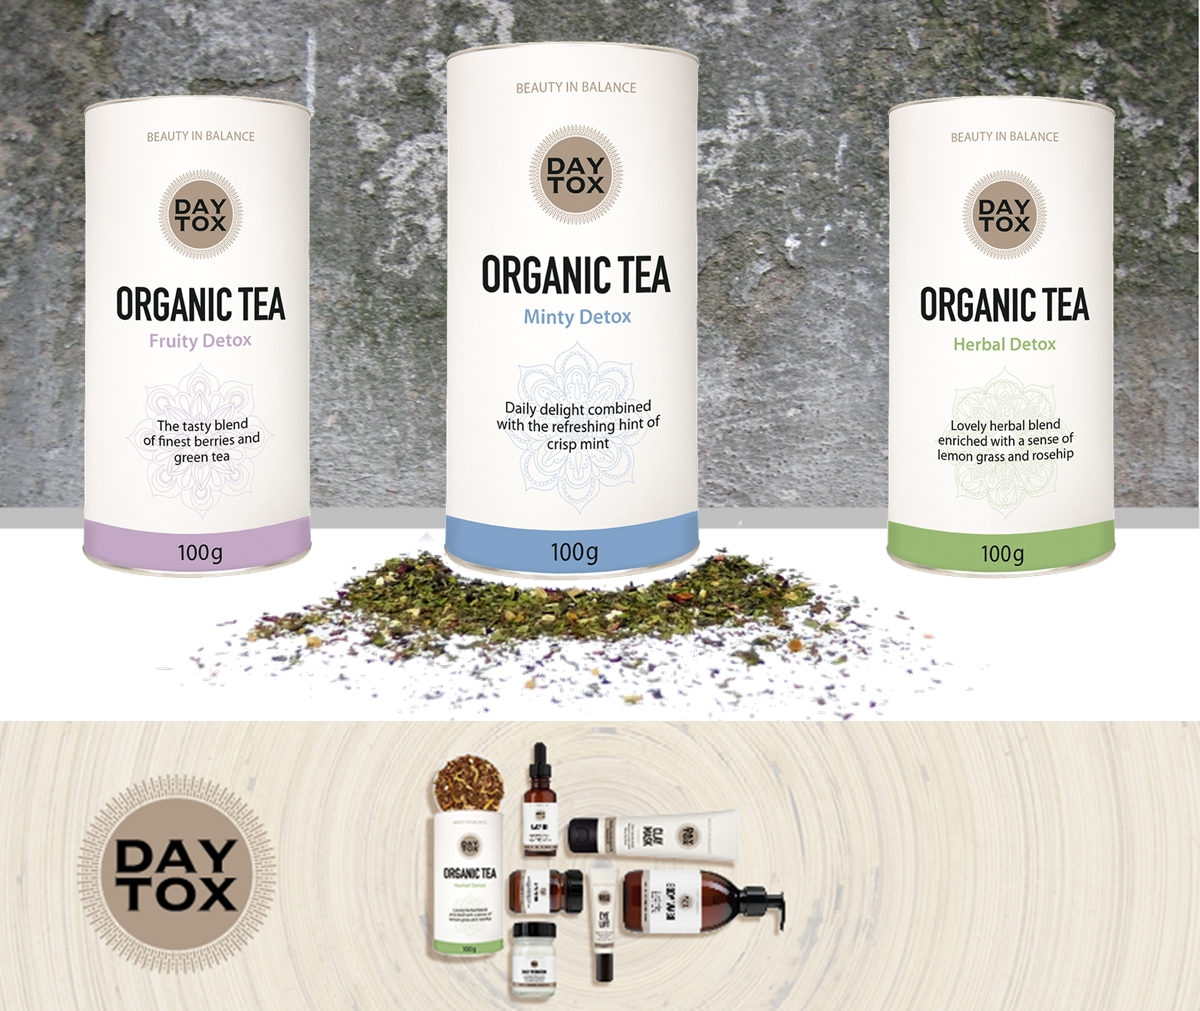 DATOX - BEAUTY in BALANCE all Teas overview